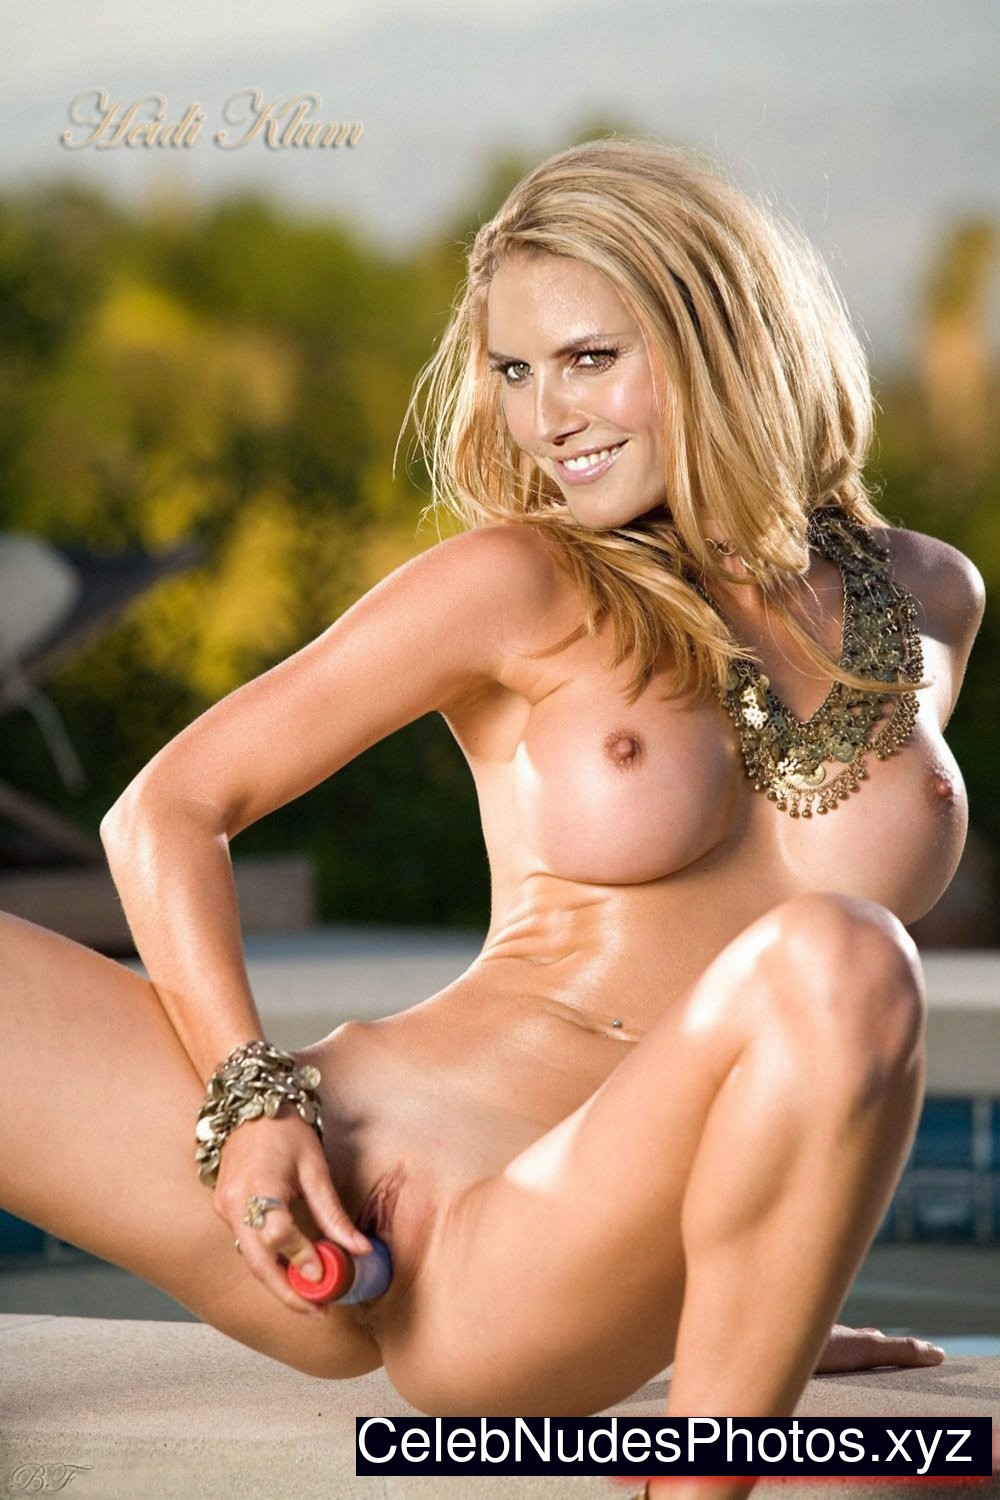 Naked pictures of heidi klum